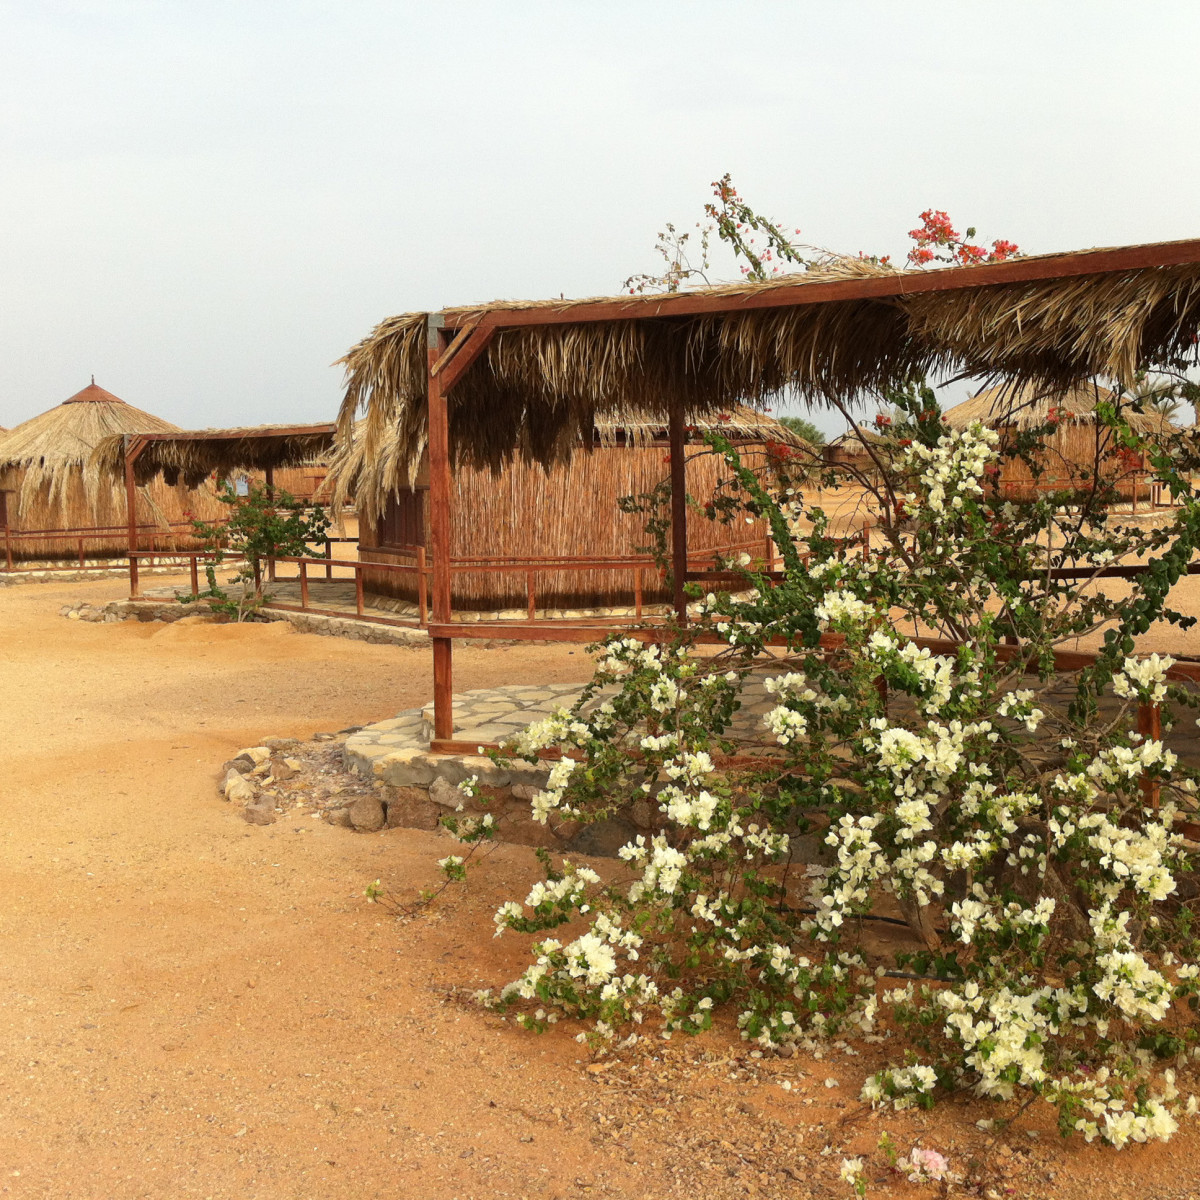 Bougainvillea-shaded huts at Mutawea's camp, Castle Beach Sinai Egypt